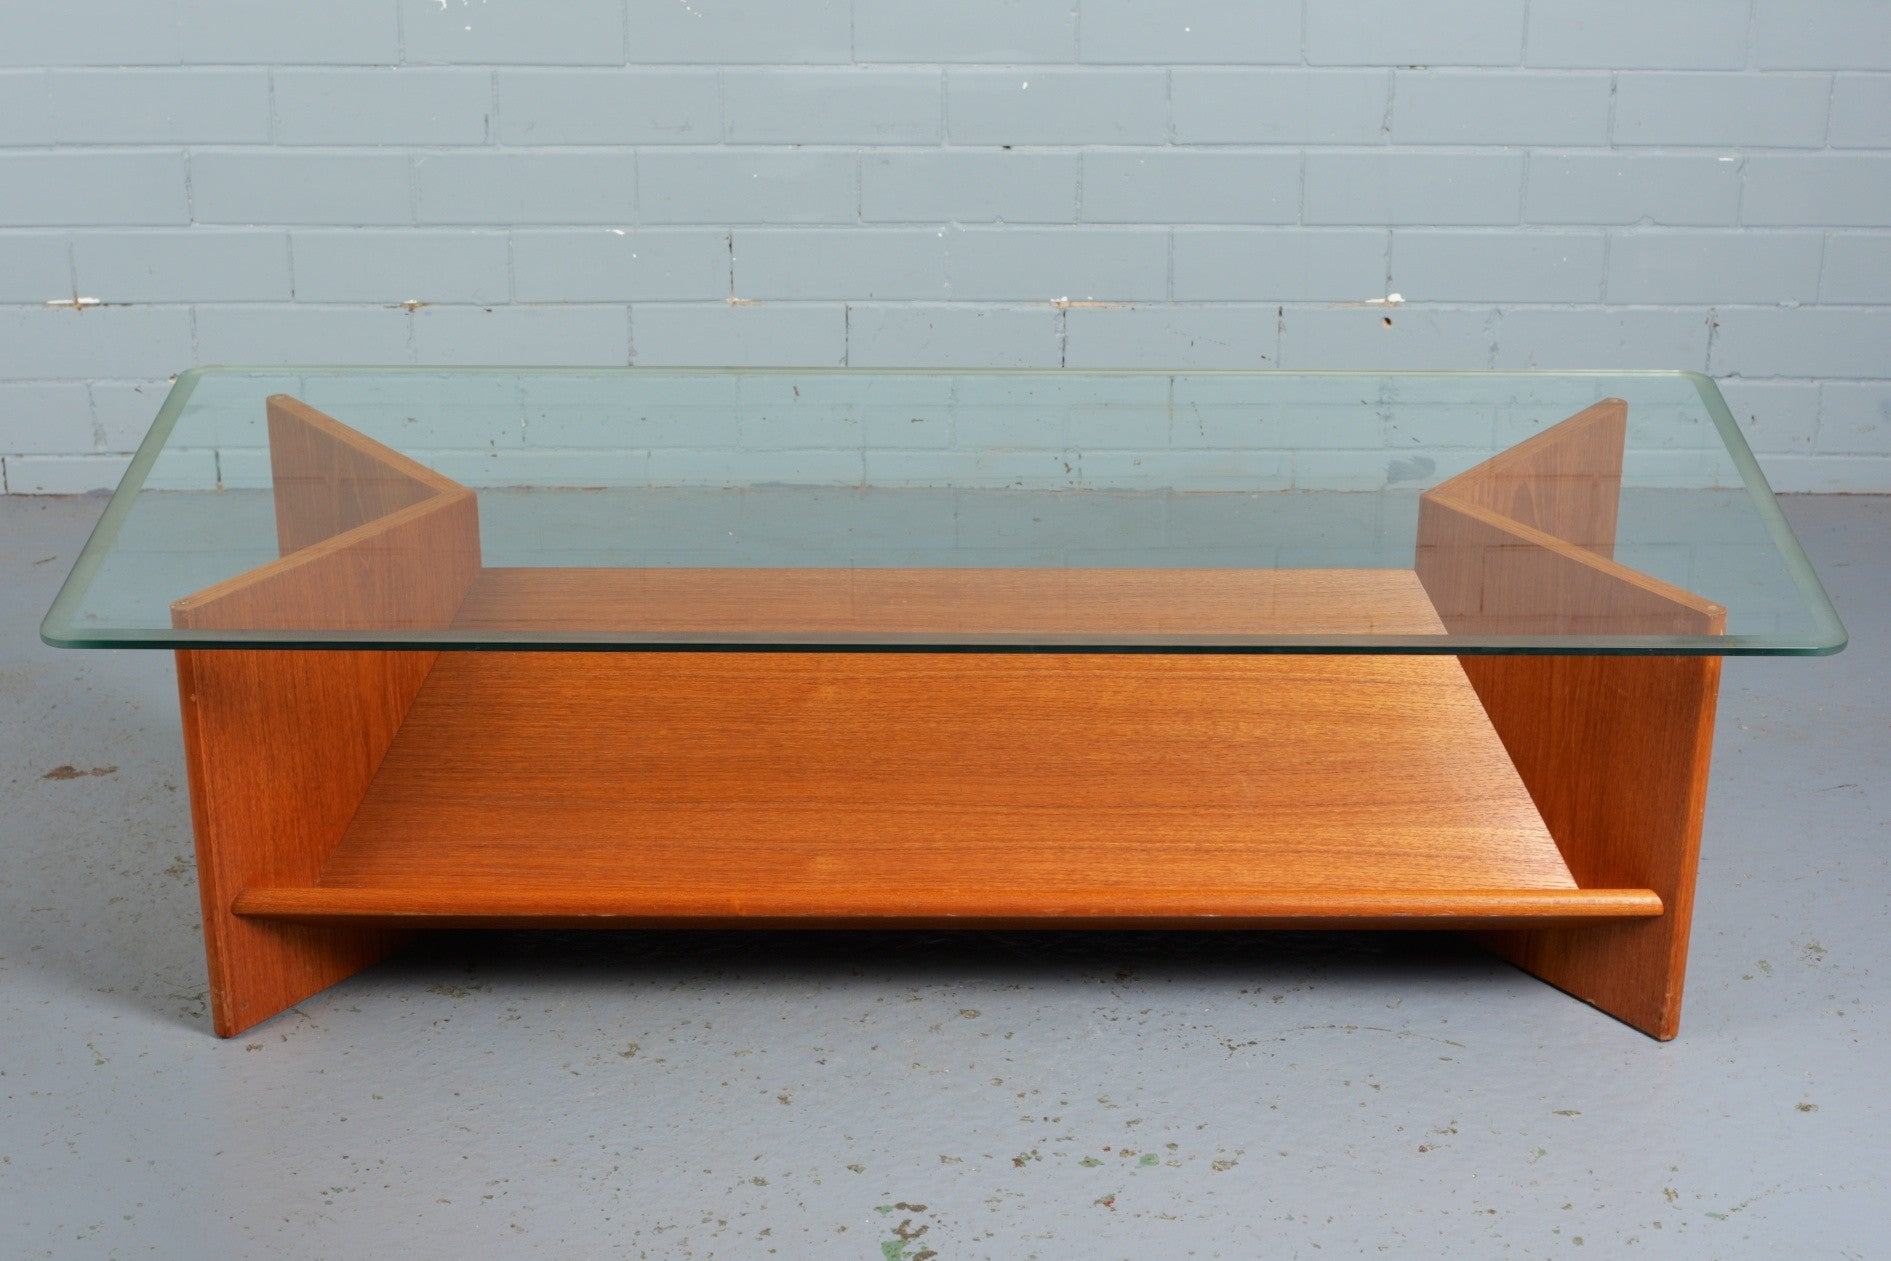 Teak and glass coffee table for sale at Industrious Interiors, an online vintage furniture and homeware store based in Nottingham, England.